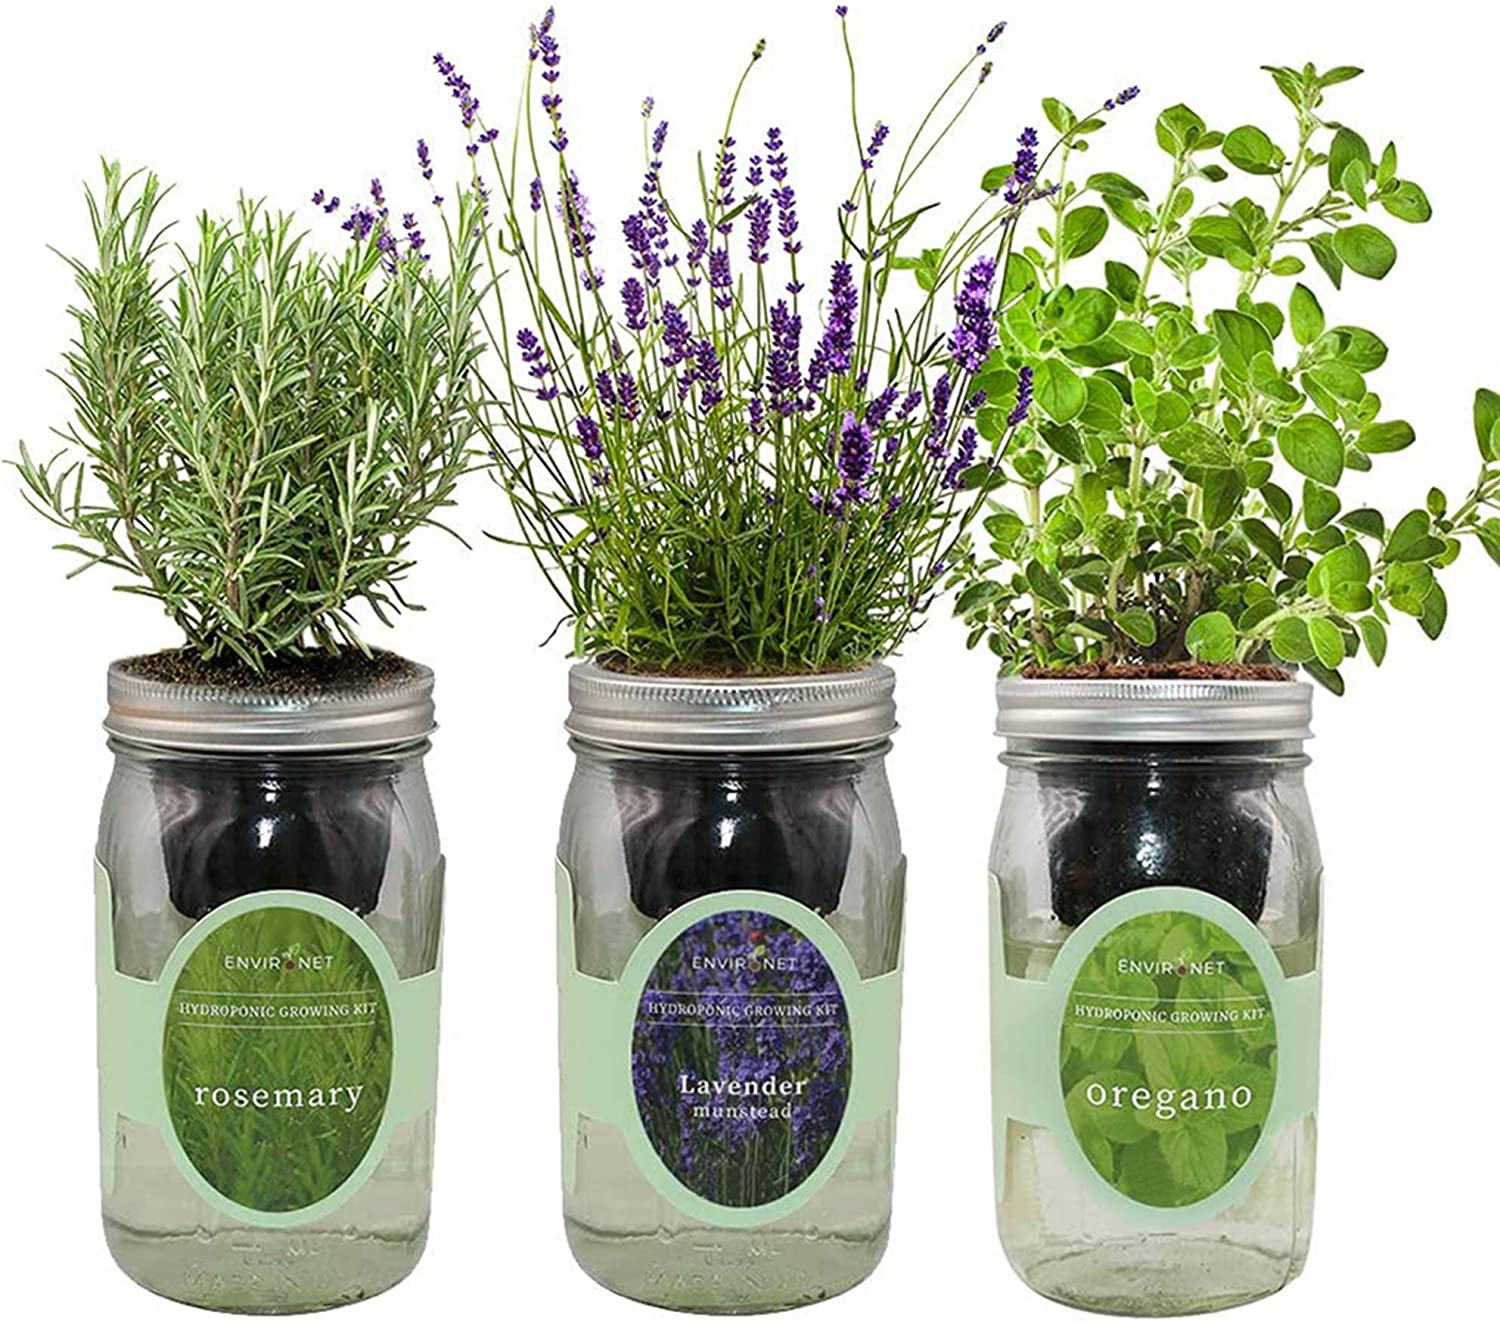 Environet Hydroponic Herb Growing Kit Set, Self-Watering Mason Jar Herb Garden Starter Kit Indoor, Grow Your Own Herbs from Seeds (Rosemary, Lavender, Oregano)